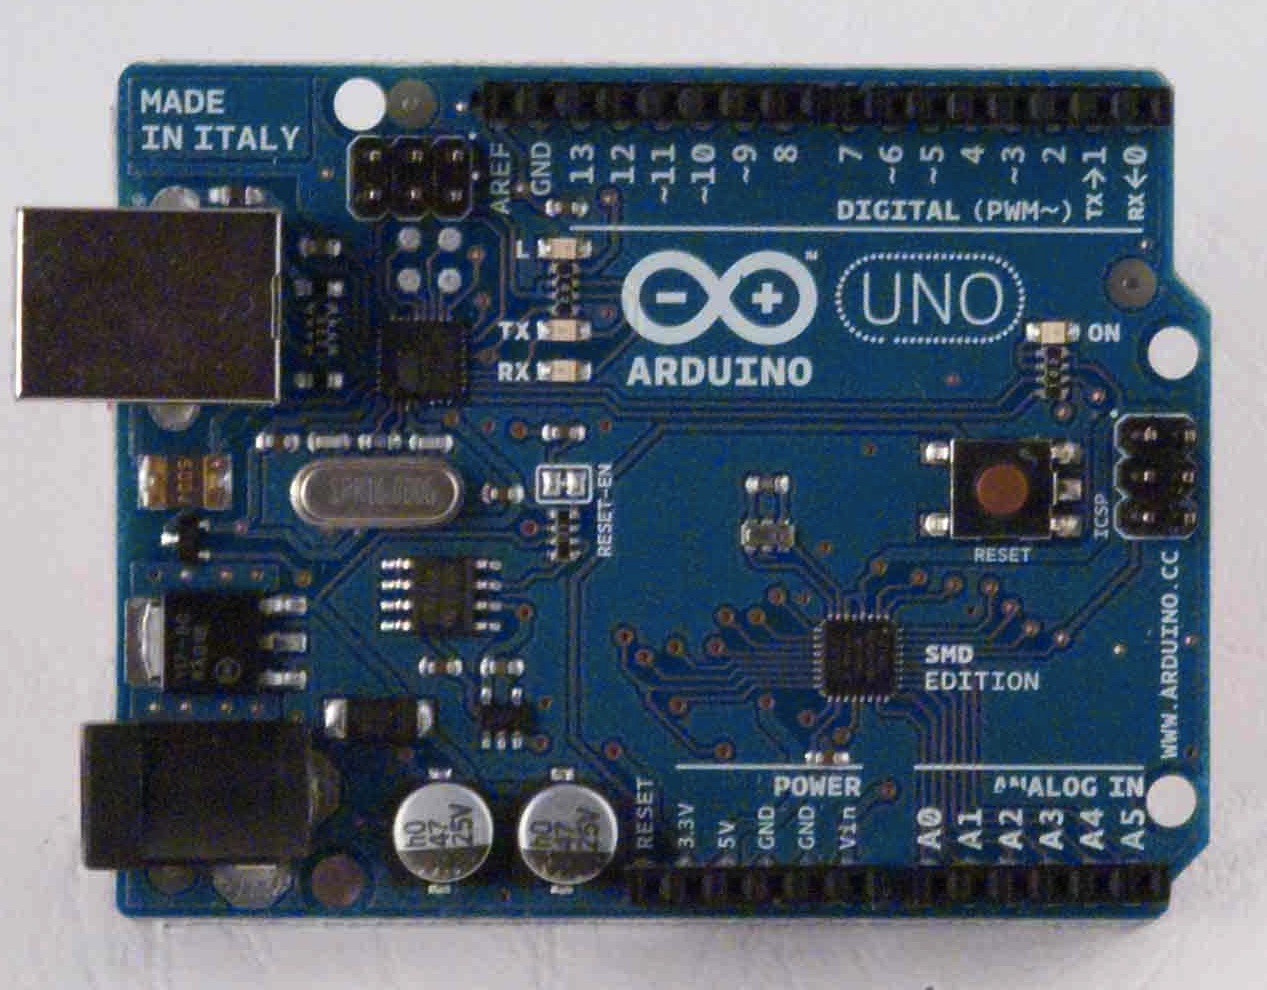 Osepp uno r plus vs official arduino simply smarter